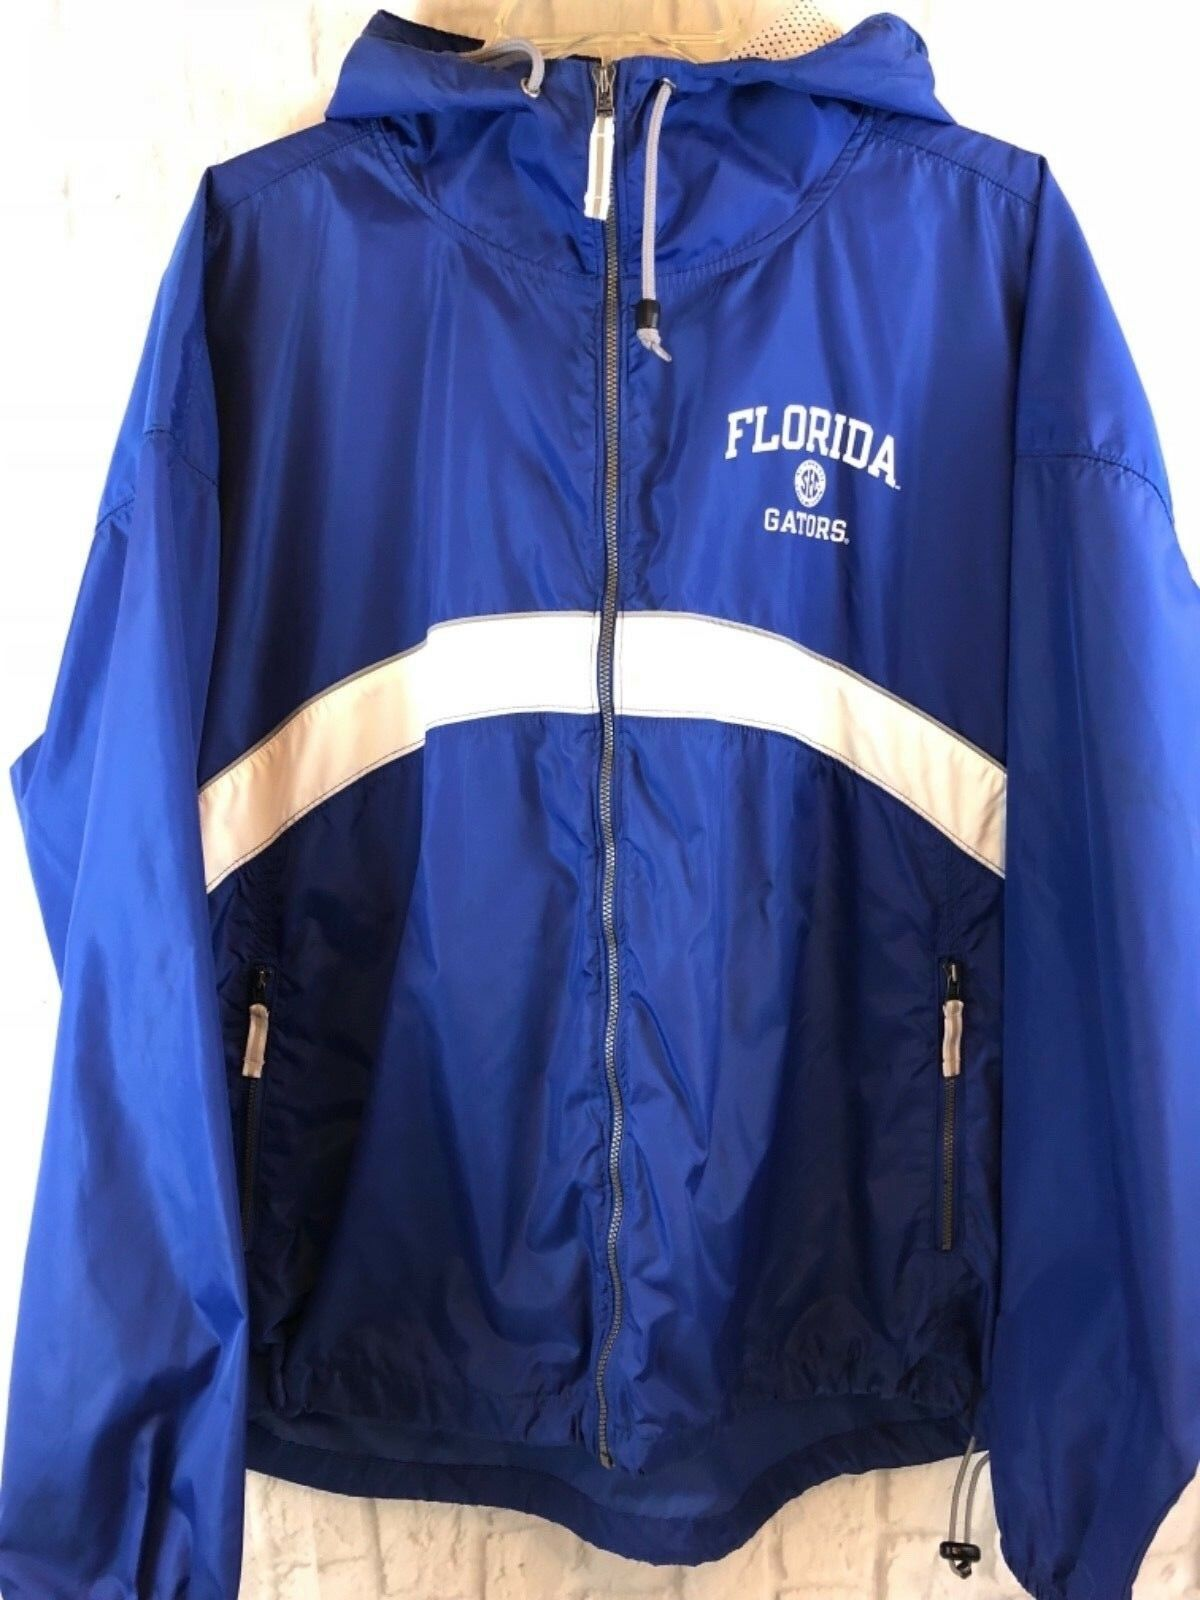 Details about Gear For Sports Florida Gators Blue And